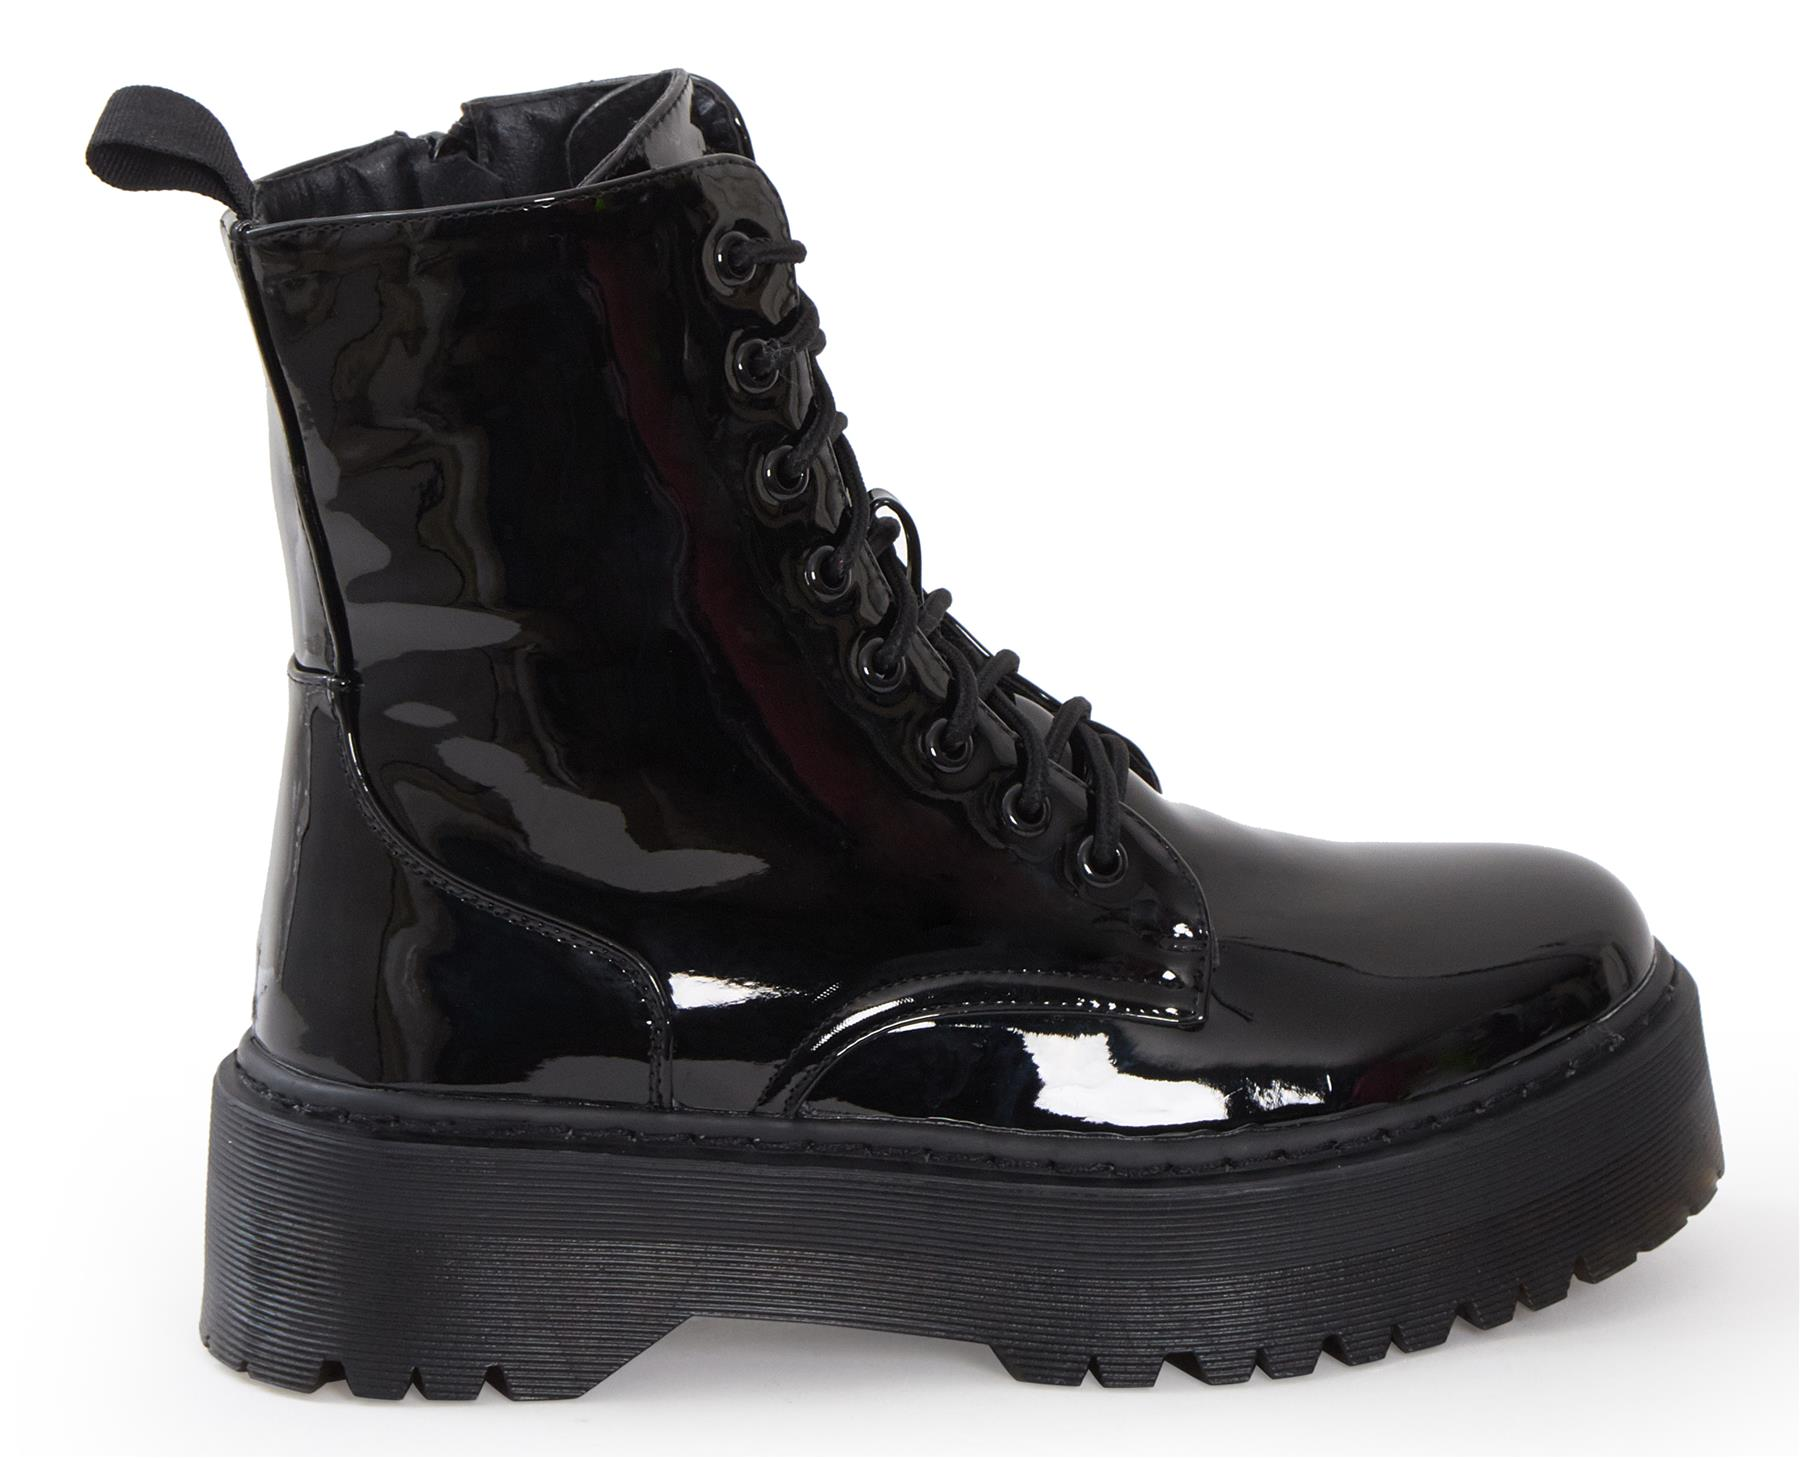 Womens-HiTop-Platform-Military-Punk-Biker-Ankle-PU-Leather-Lace-Up-Vintage-Boots thumbnail 3